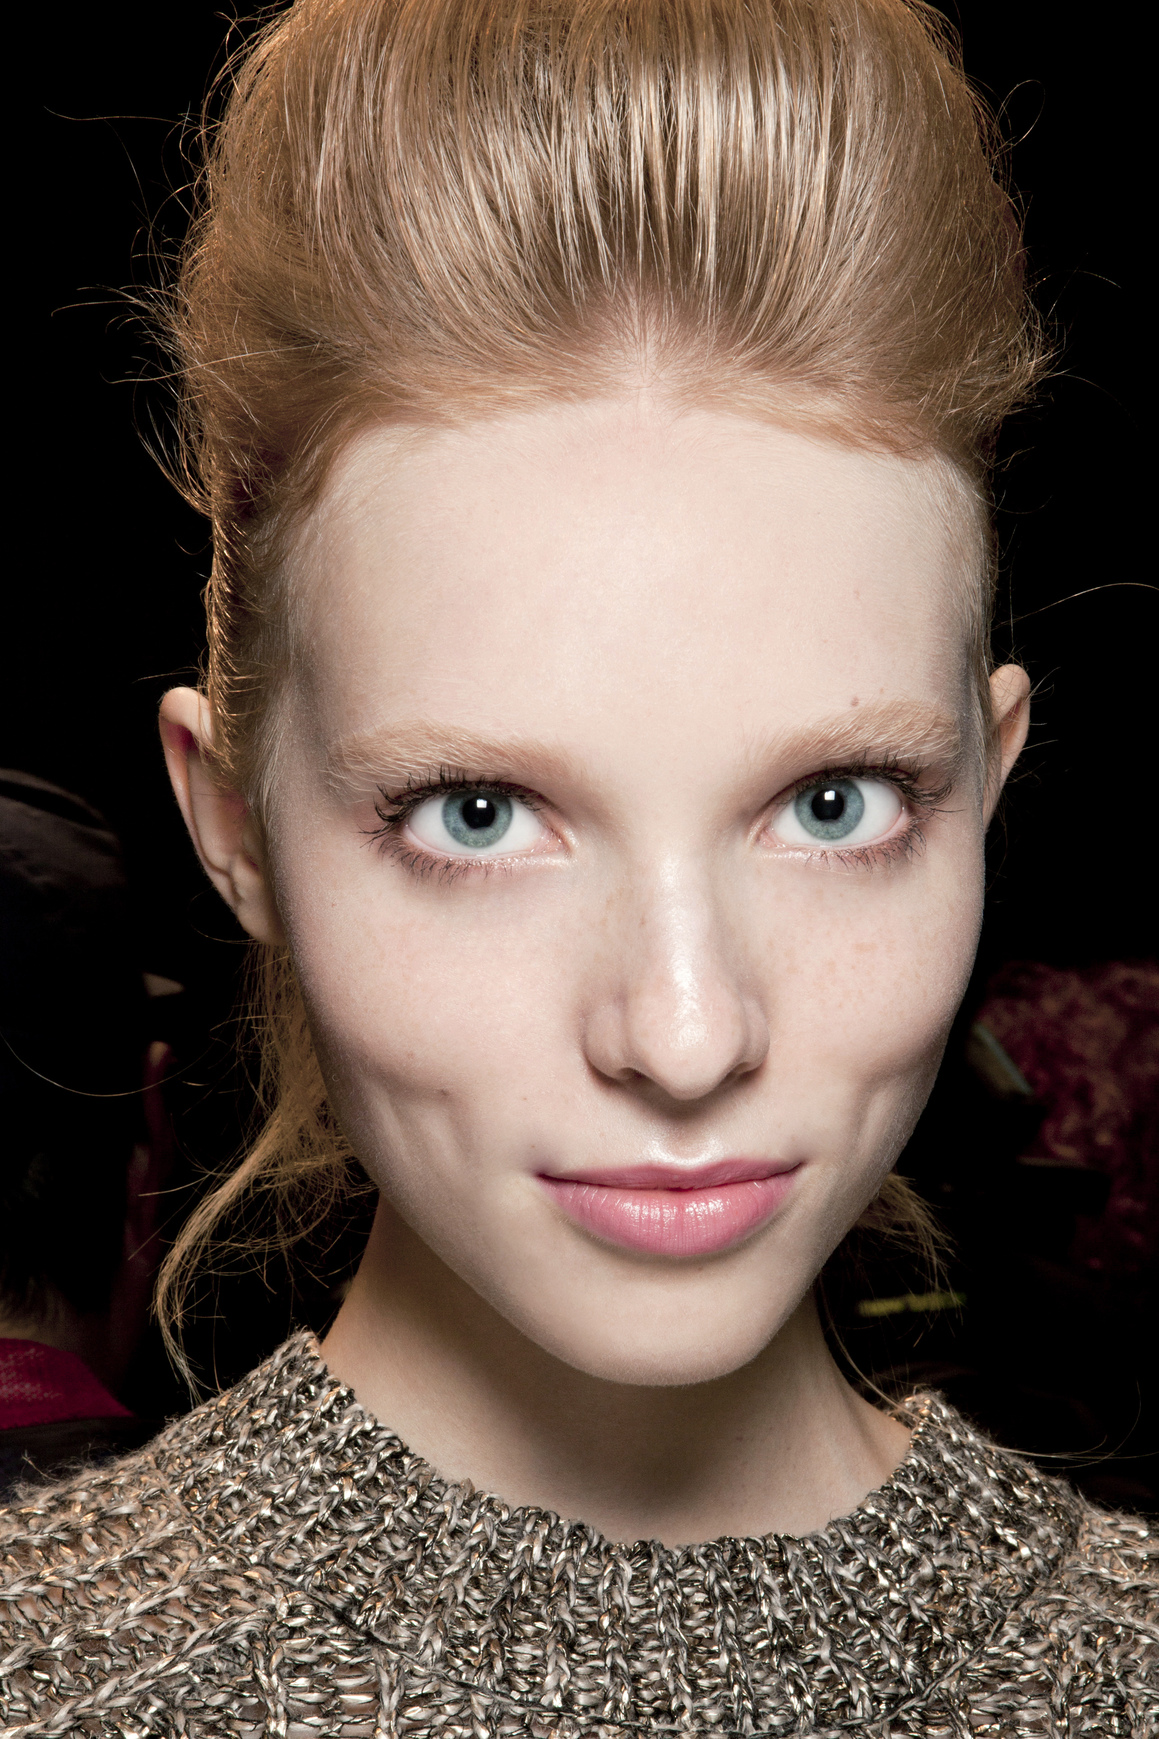 10 Things You Should Never Say To A Girl With Blonde Eyebrows